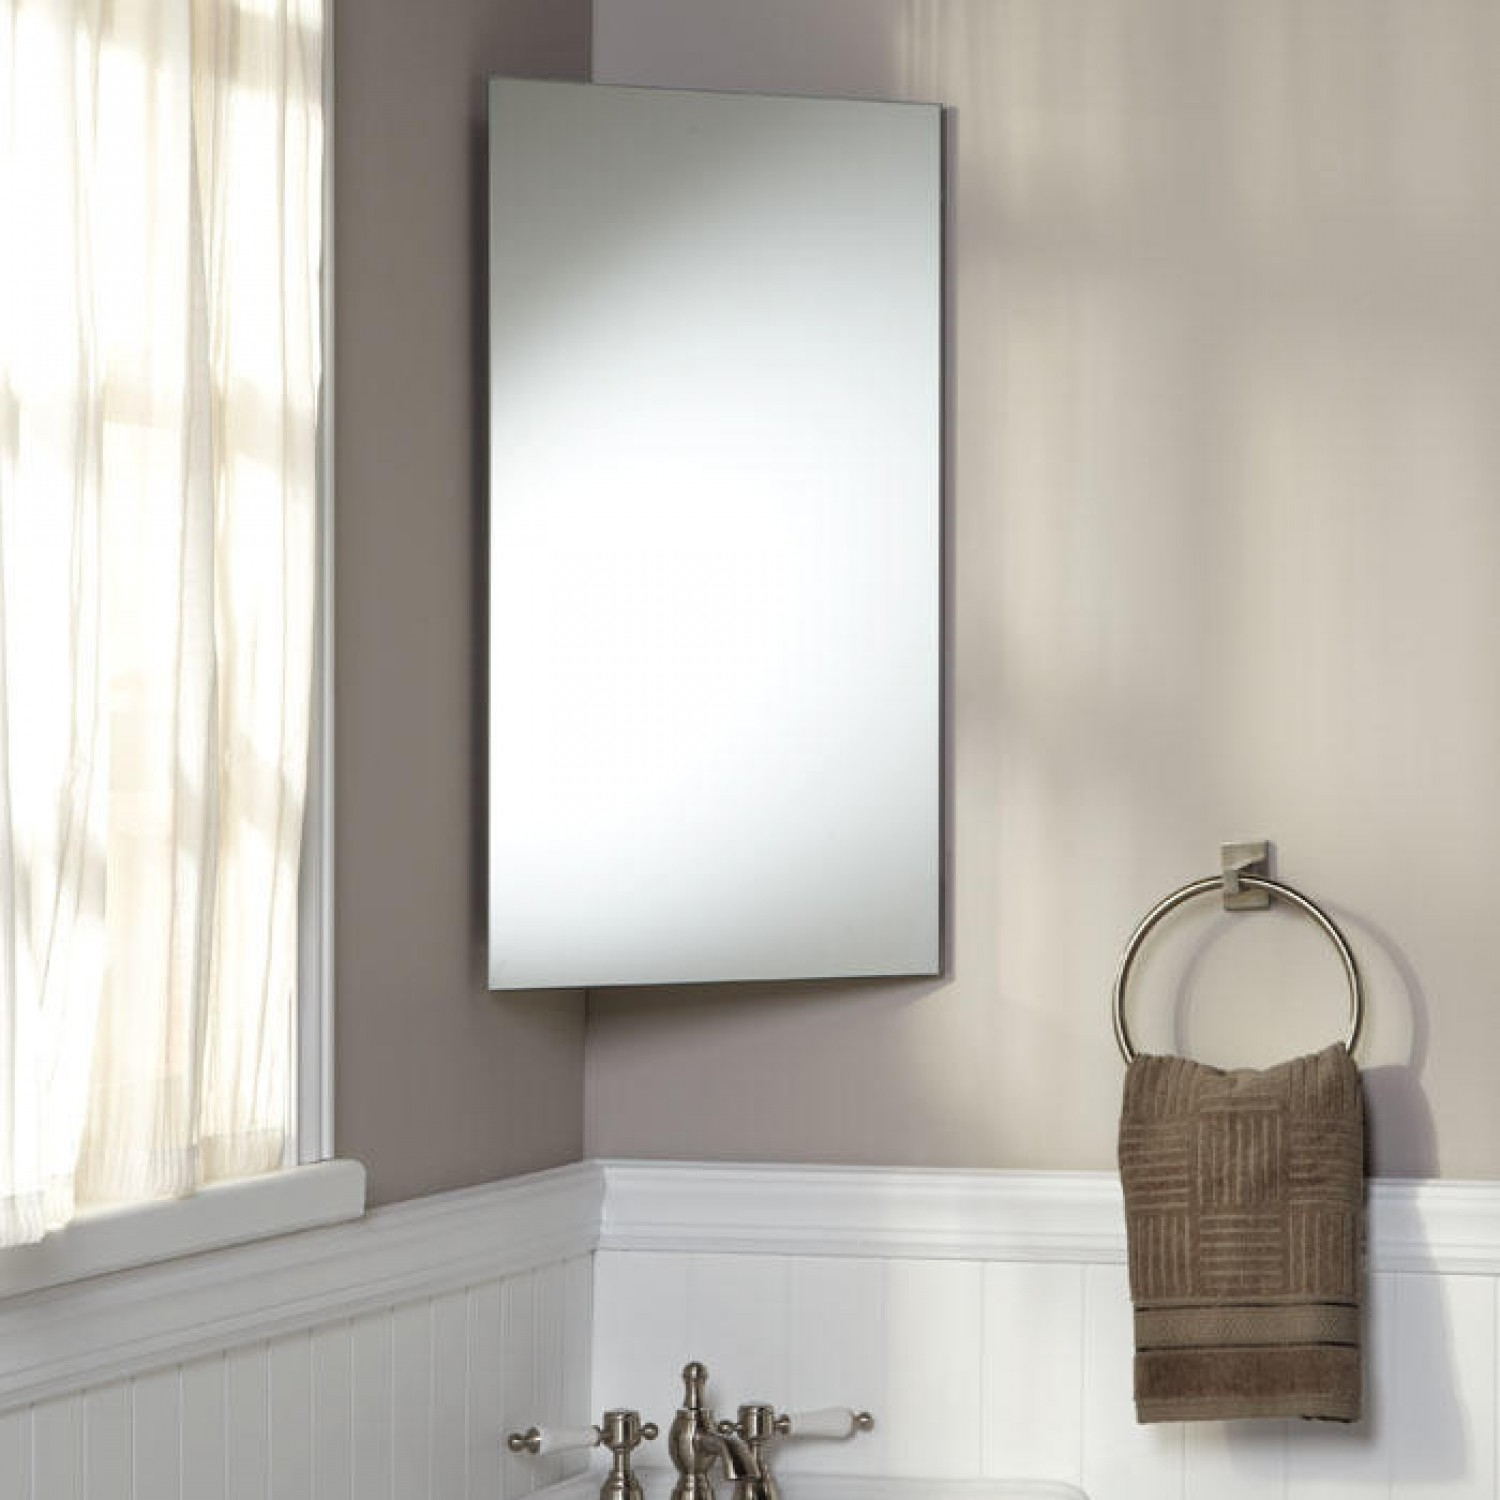 Permalink to Stainless Steel Bathroom Corner Wall Mirror Cabinet